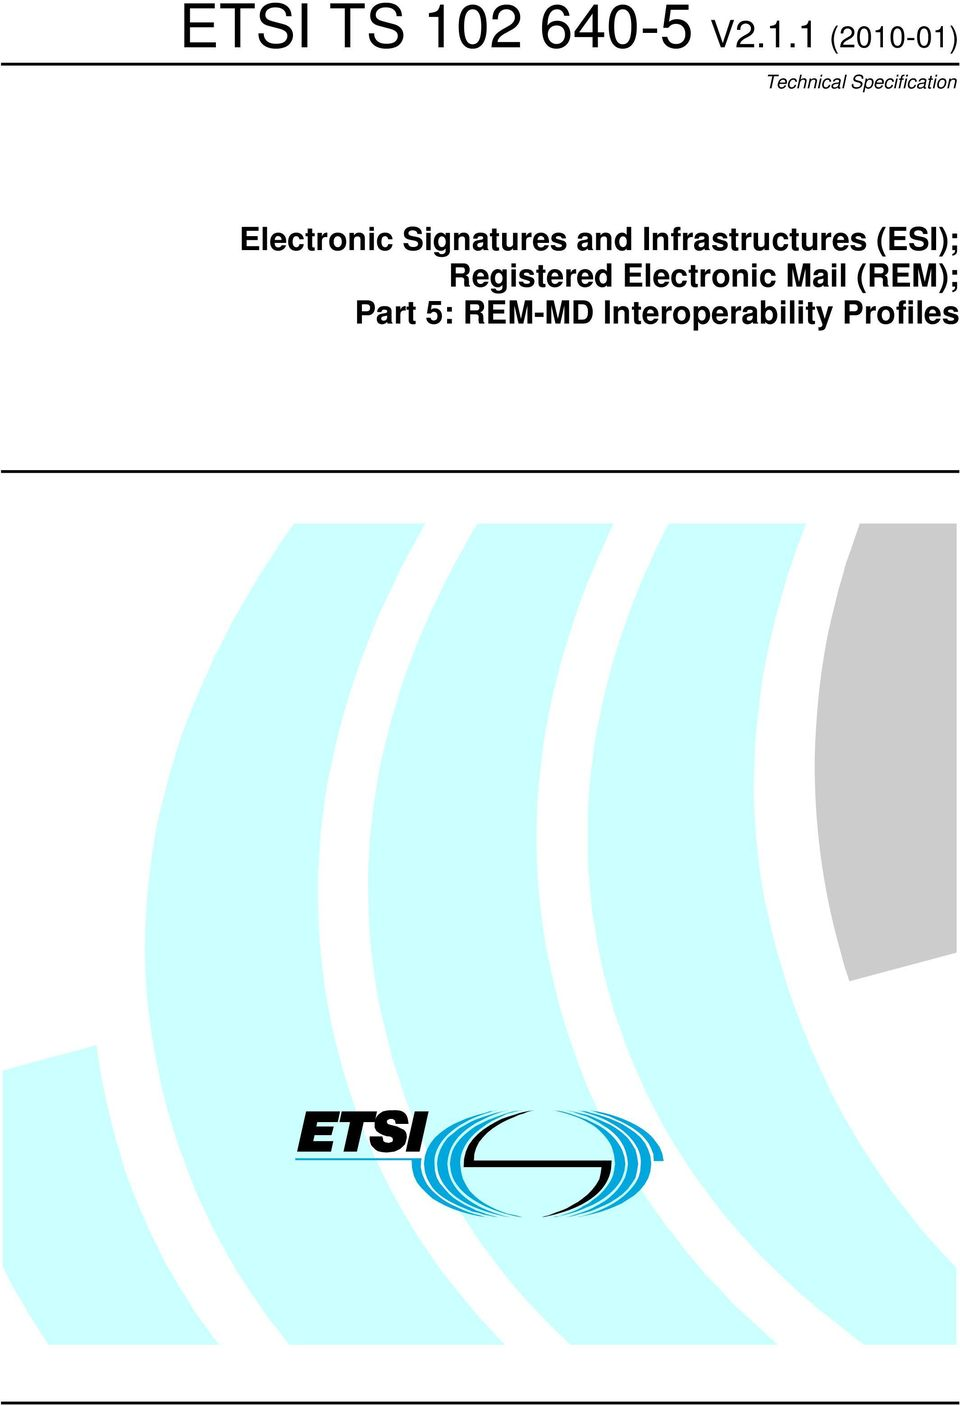 Infrastructures (ESI); Registered Electronic